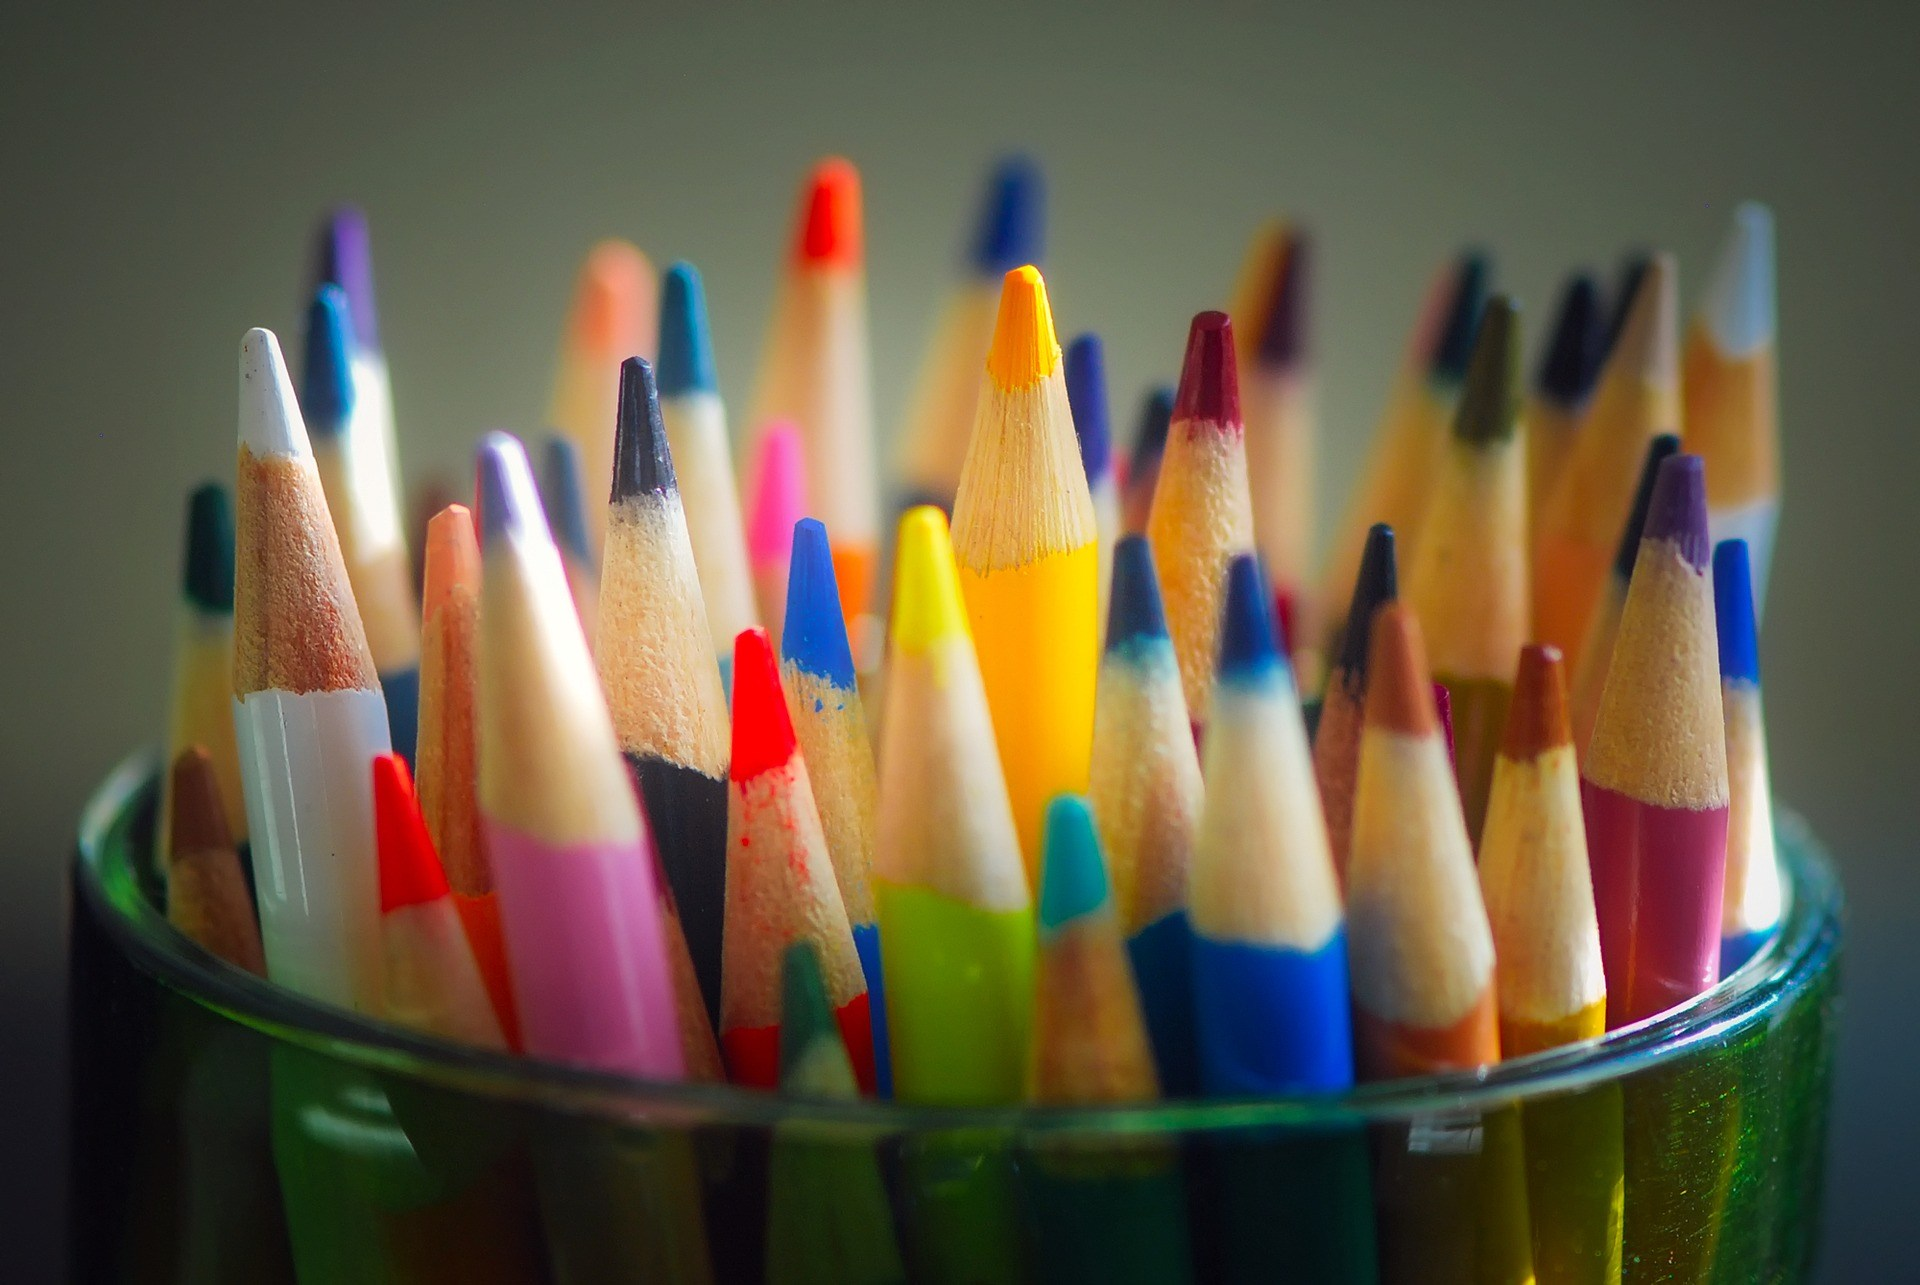 Functional Equivalence in Instructional Design: The Pencil Holder Test